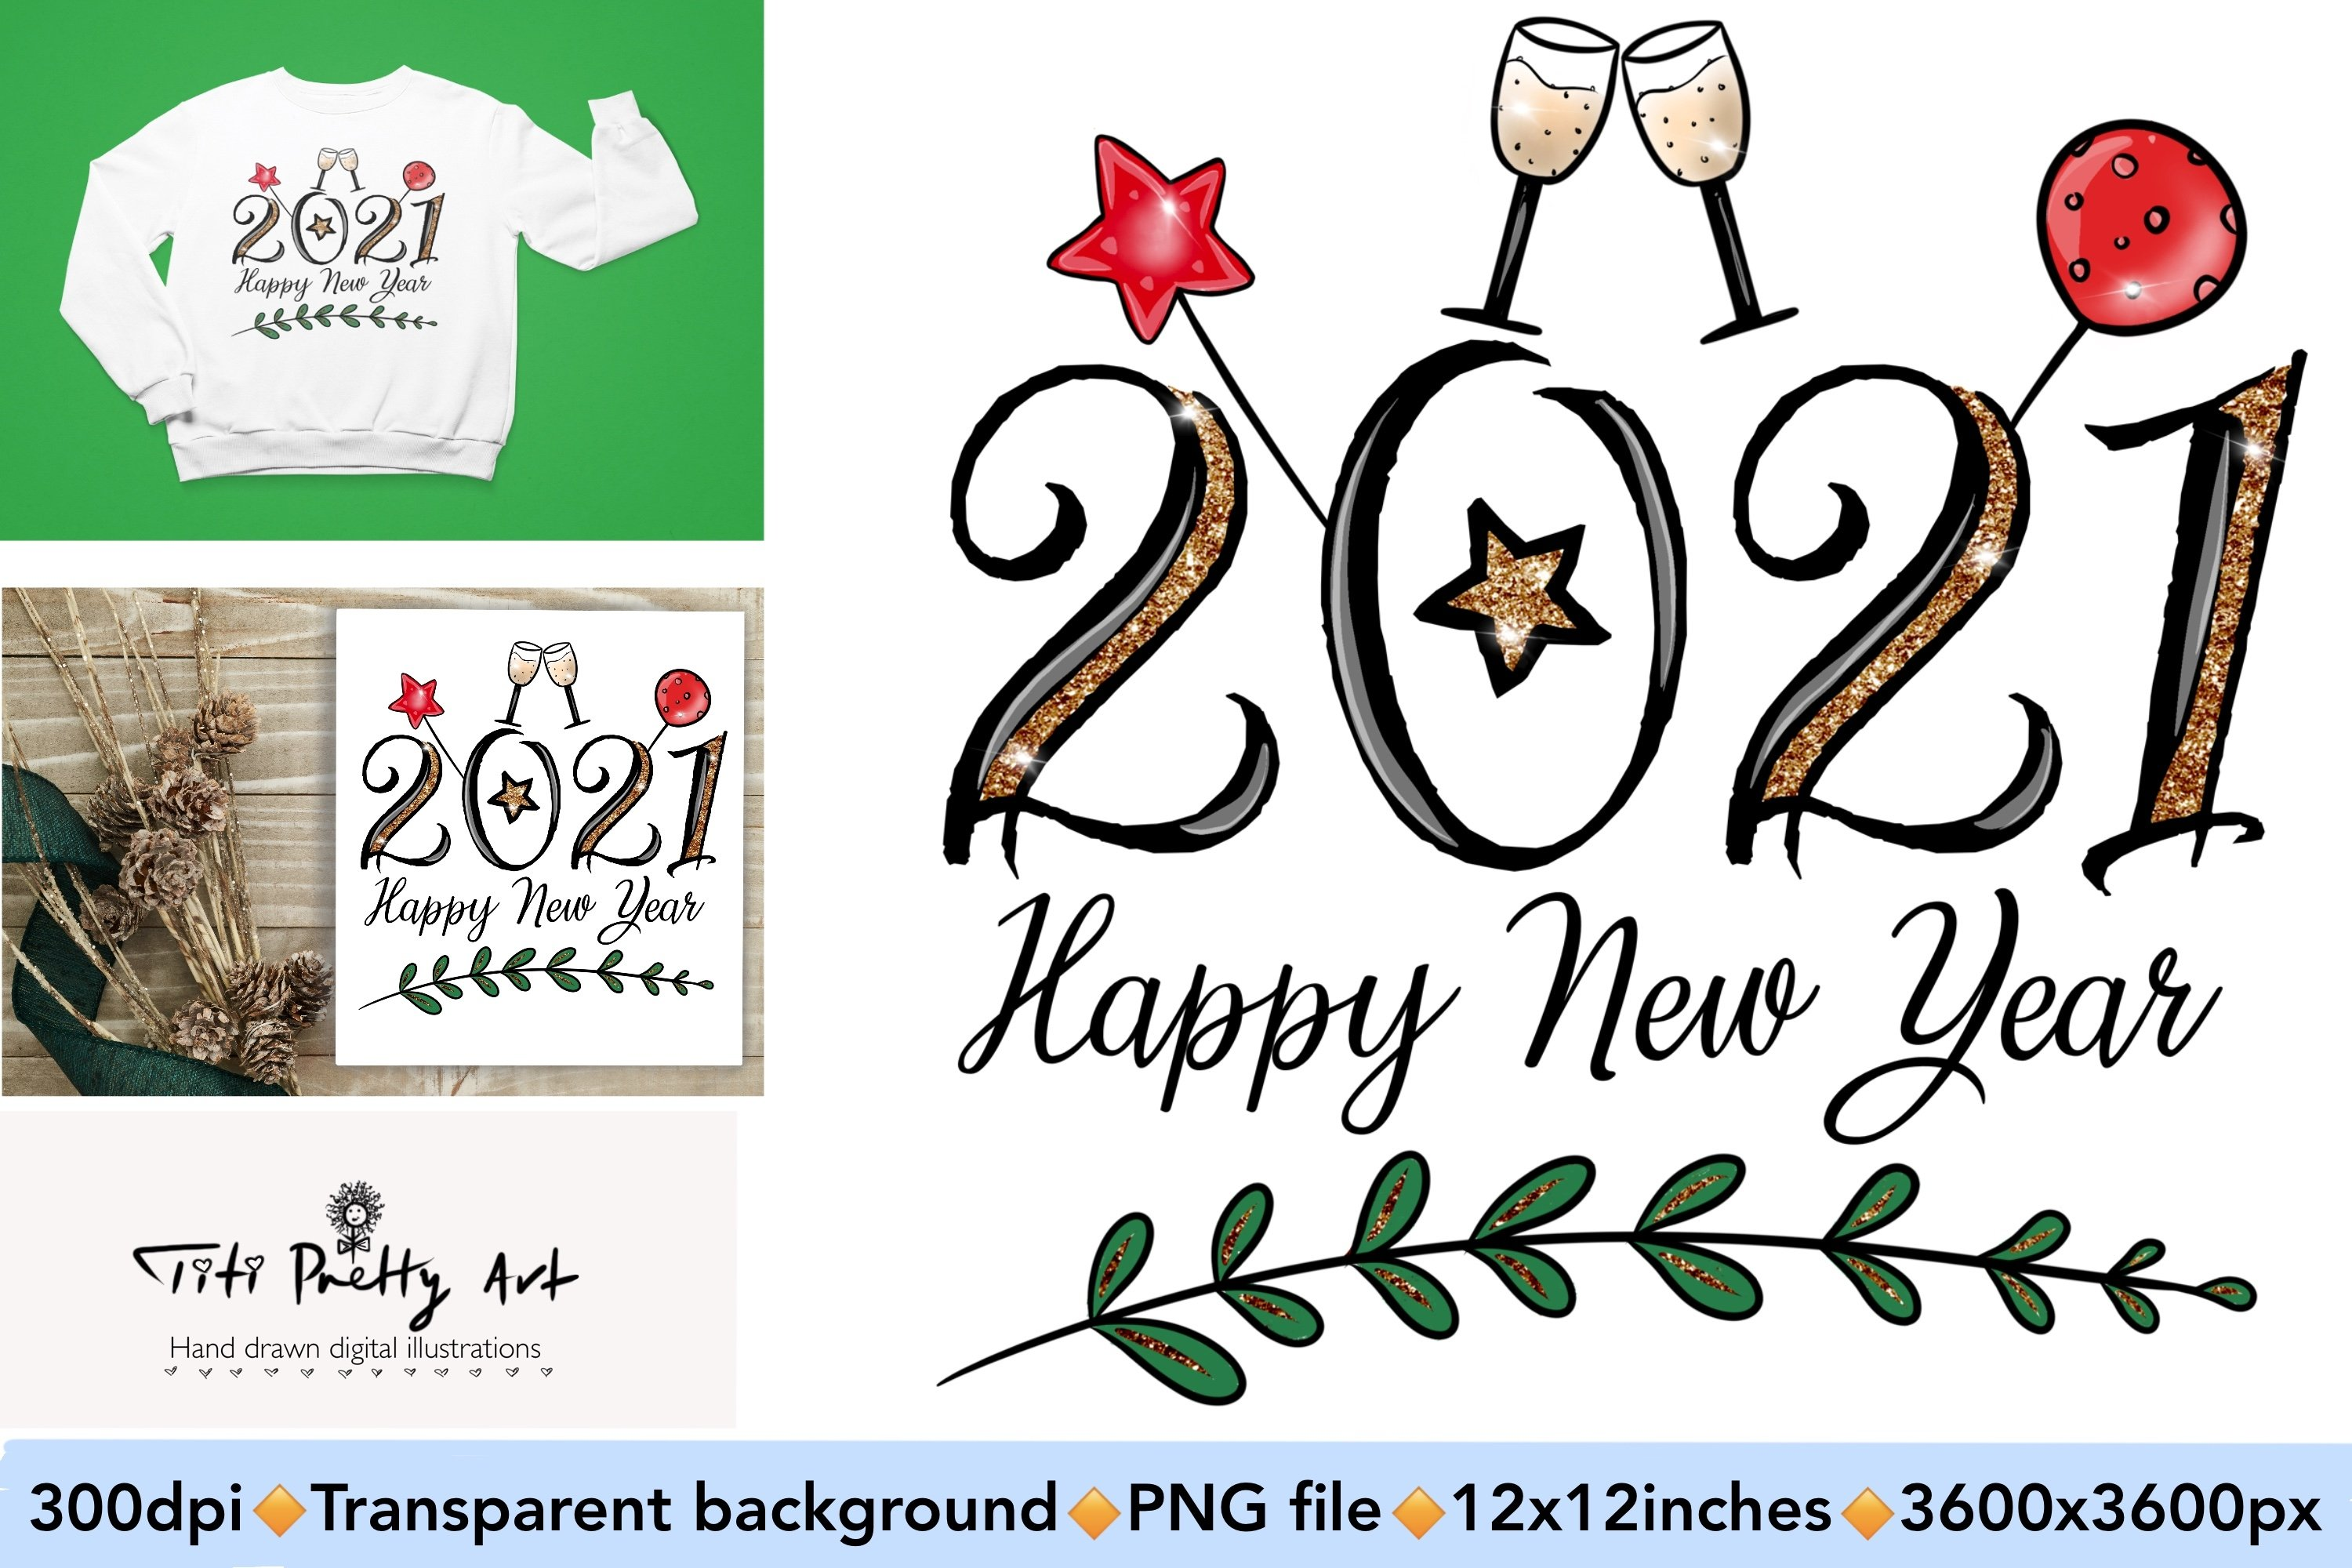 Happy New Year 2021 Png New Year Bundle 1053230 Sublimation Design Bundles 2021 happy new year 2021 new year happy 2021 new year, logo, line, meter, happiness, number, geometry transparent background png clipart. happy new year 2021 png new year bundle